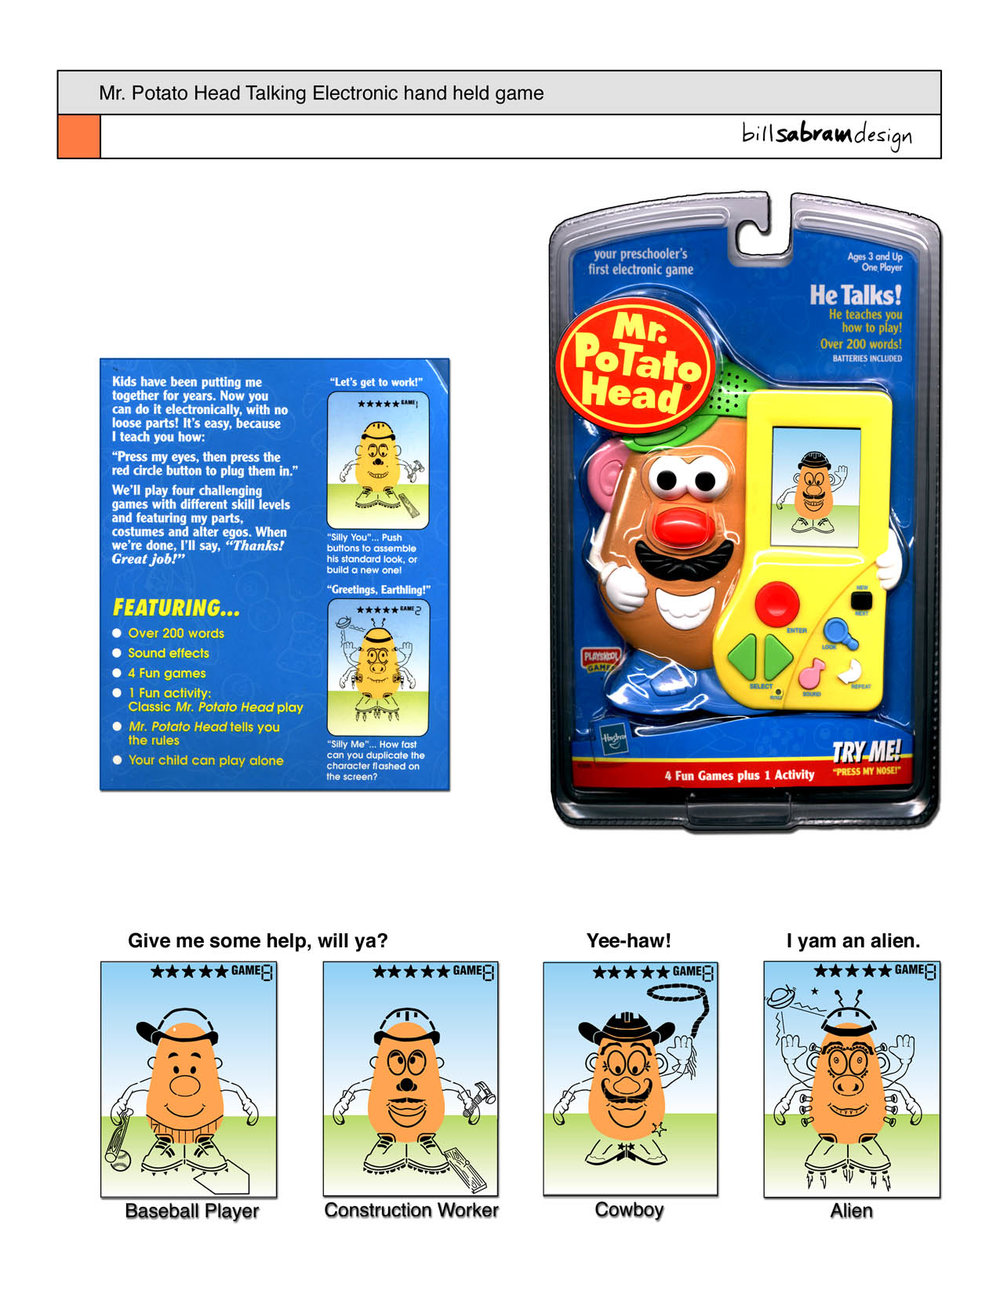 """We were told that you could not make a hand held game for preschoolers. Mr. Potato Head speaks hundreds of words, animates as various LCD characters (cowboy, baseball player, construction worker and even an alien!) and teaches the child how to play.  While working at Hasbro Games, I managed a design intern as we defined the user experience for this game. In a few weeks, we hammered out the electronic spec, defining the LCD art, game functionality and fun. We split the functions into two distinct interfaces: the  literal  of Mr. Potato Head's parts and the  abstract  of the hand held at his side. When the game asks for a hat, you press the button on the brim of his green cap. Later, the child can select a specific hat by pressing the green arrow buttons on the abstract interface. The child plays their way through """"just in time learning"""" for each of the 4 games + free form potato building activity. Mr. Potato Head even juggles stars to reward the young player in their achievements!  As this product came to market, the president of Parker Brothers declared that it was one of the best product the company had ever created. Too bad we forgot to give it an """"off"""" switch; any button press sends the little spud into fits of talking!"""